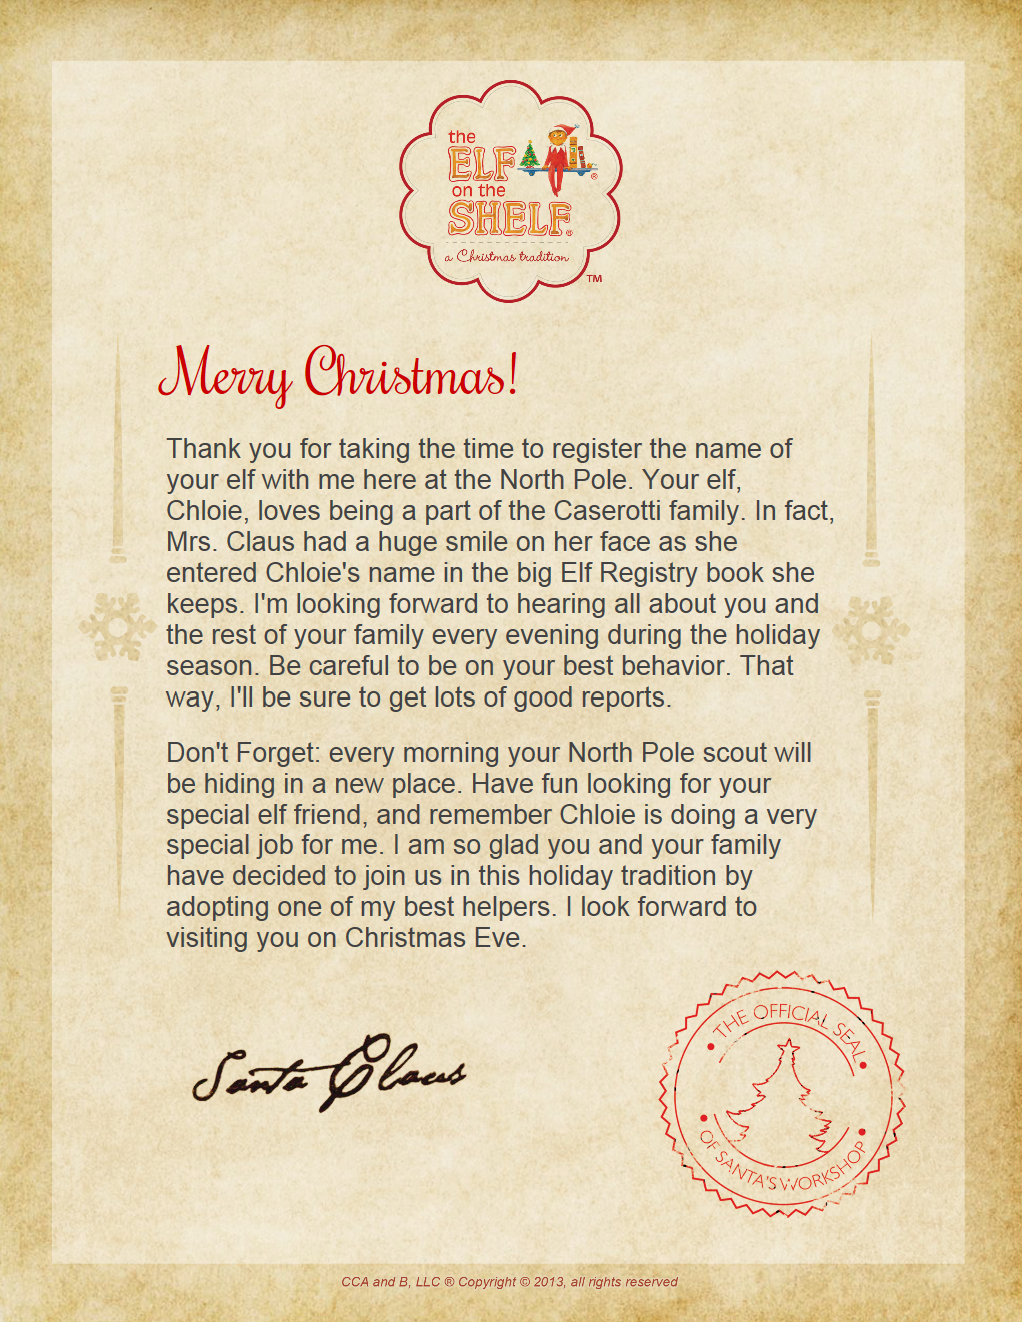 And Here Is The Eots Welcome Letter From Santa Which Is Also